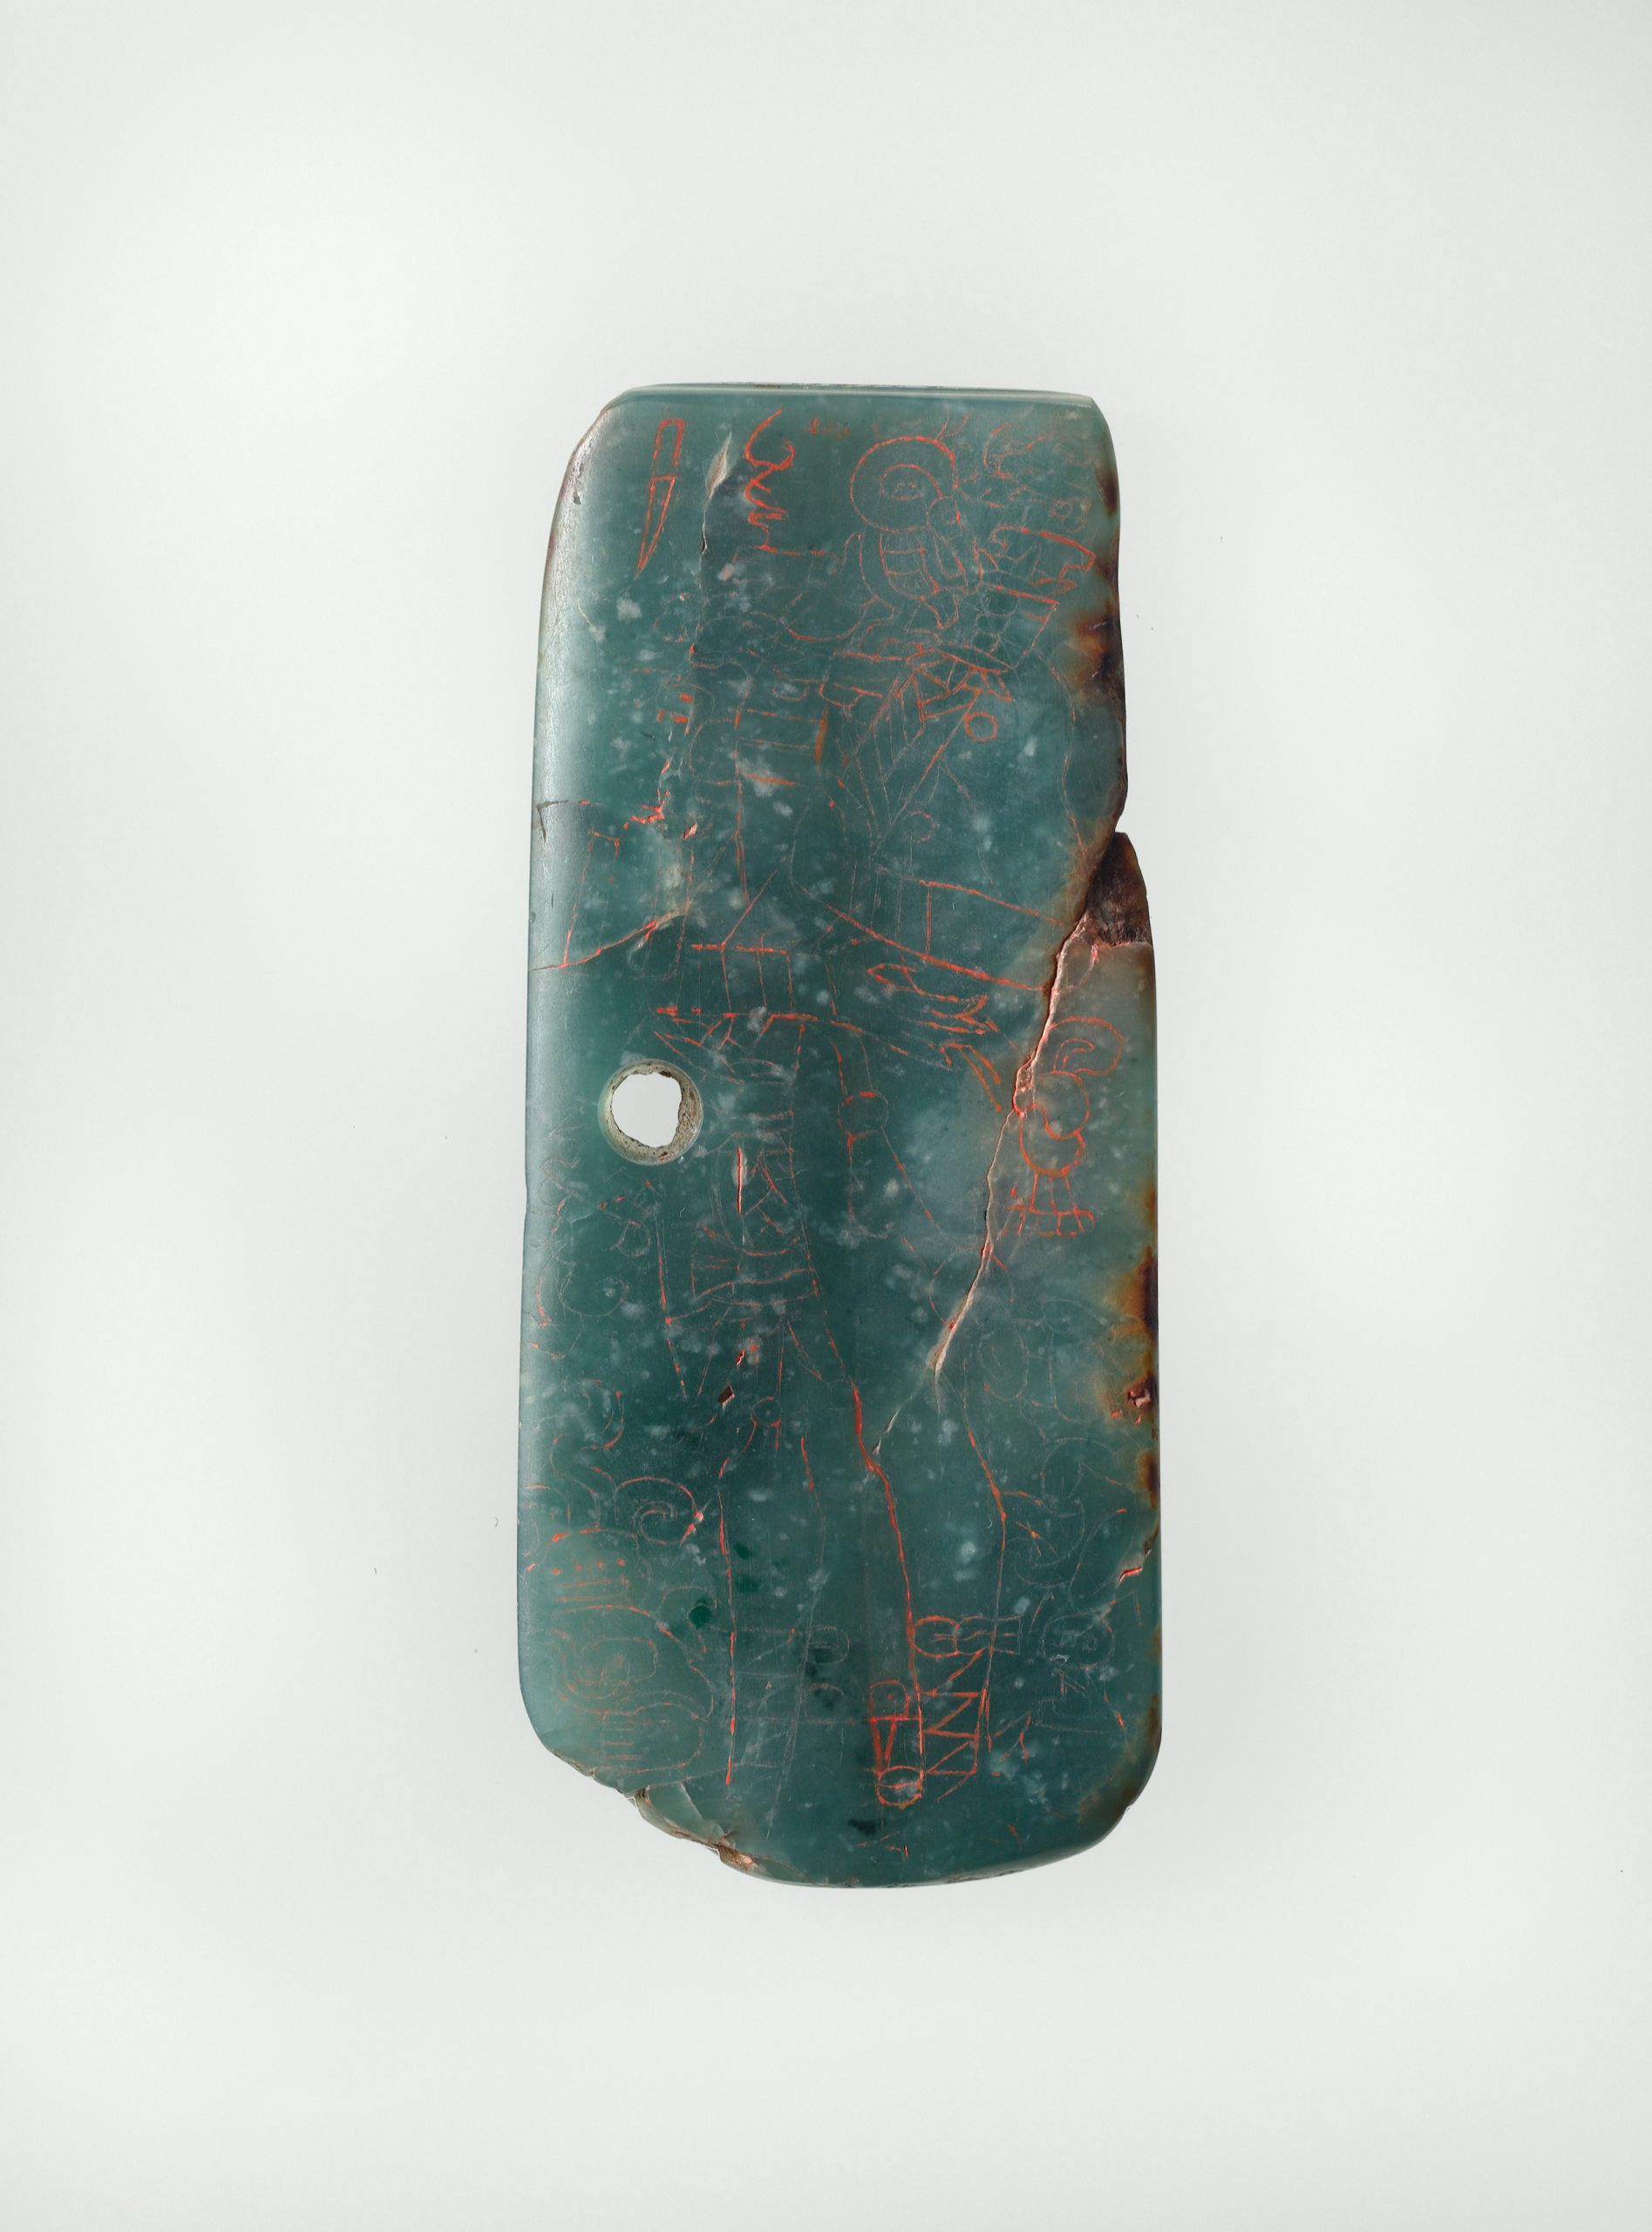 Jade green plaque with incised images of Mayan dignitary figures.